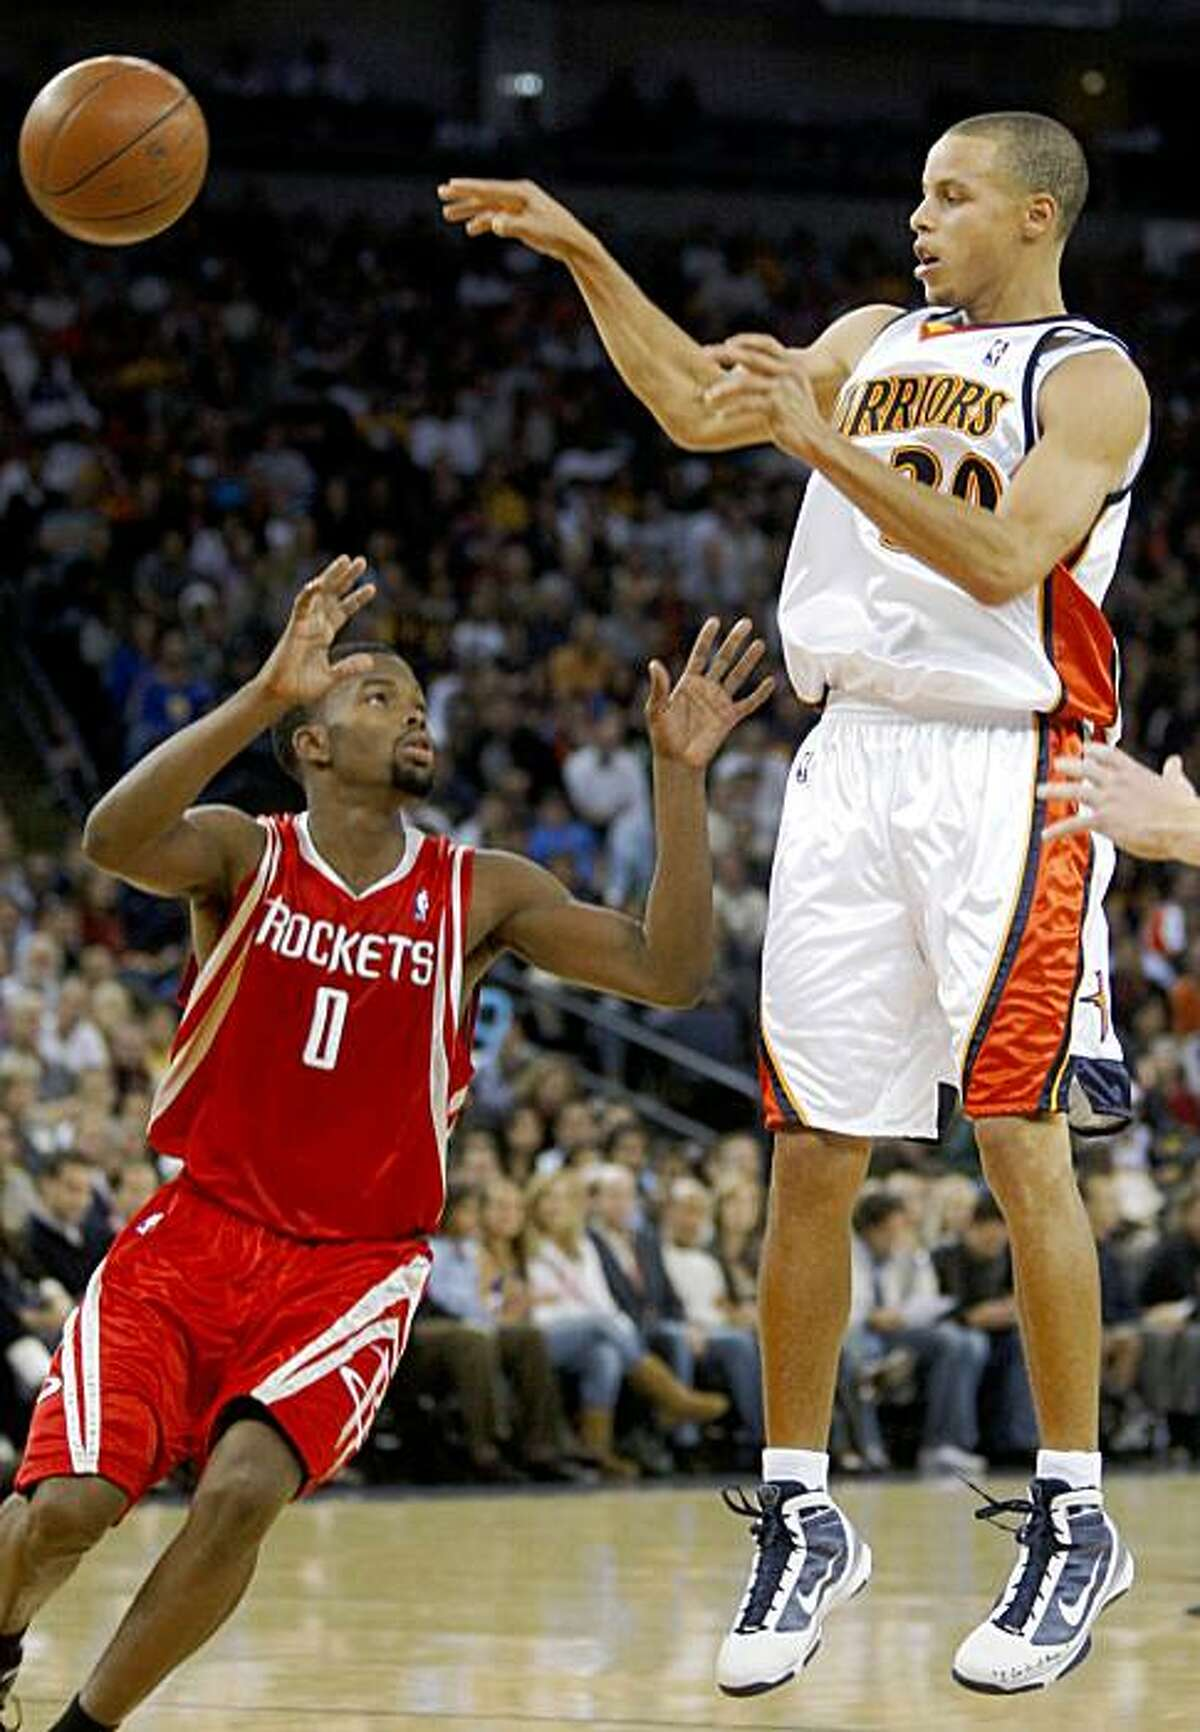 Golden State Warriors' Stephen Curry, right, passes away from Houston Rockets' Aaron Brooks during the second half of an NBA basketball game Wednesday, Oct. 28, 2009, in Oakland, Calif. (AP Photo/Ben Margot)